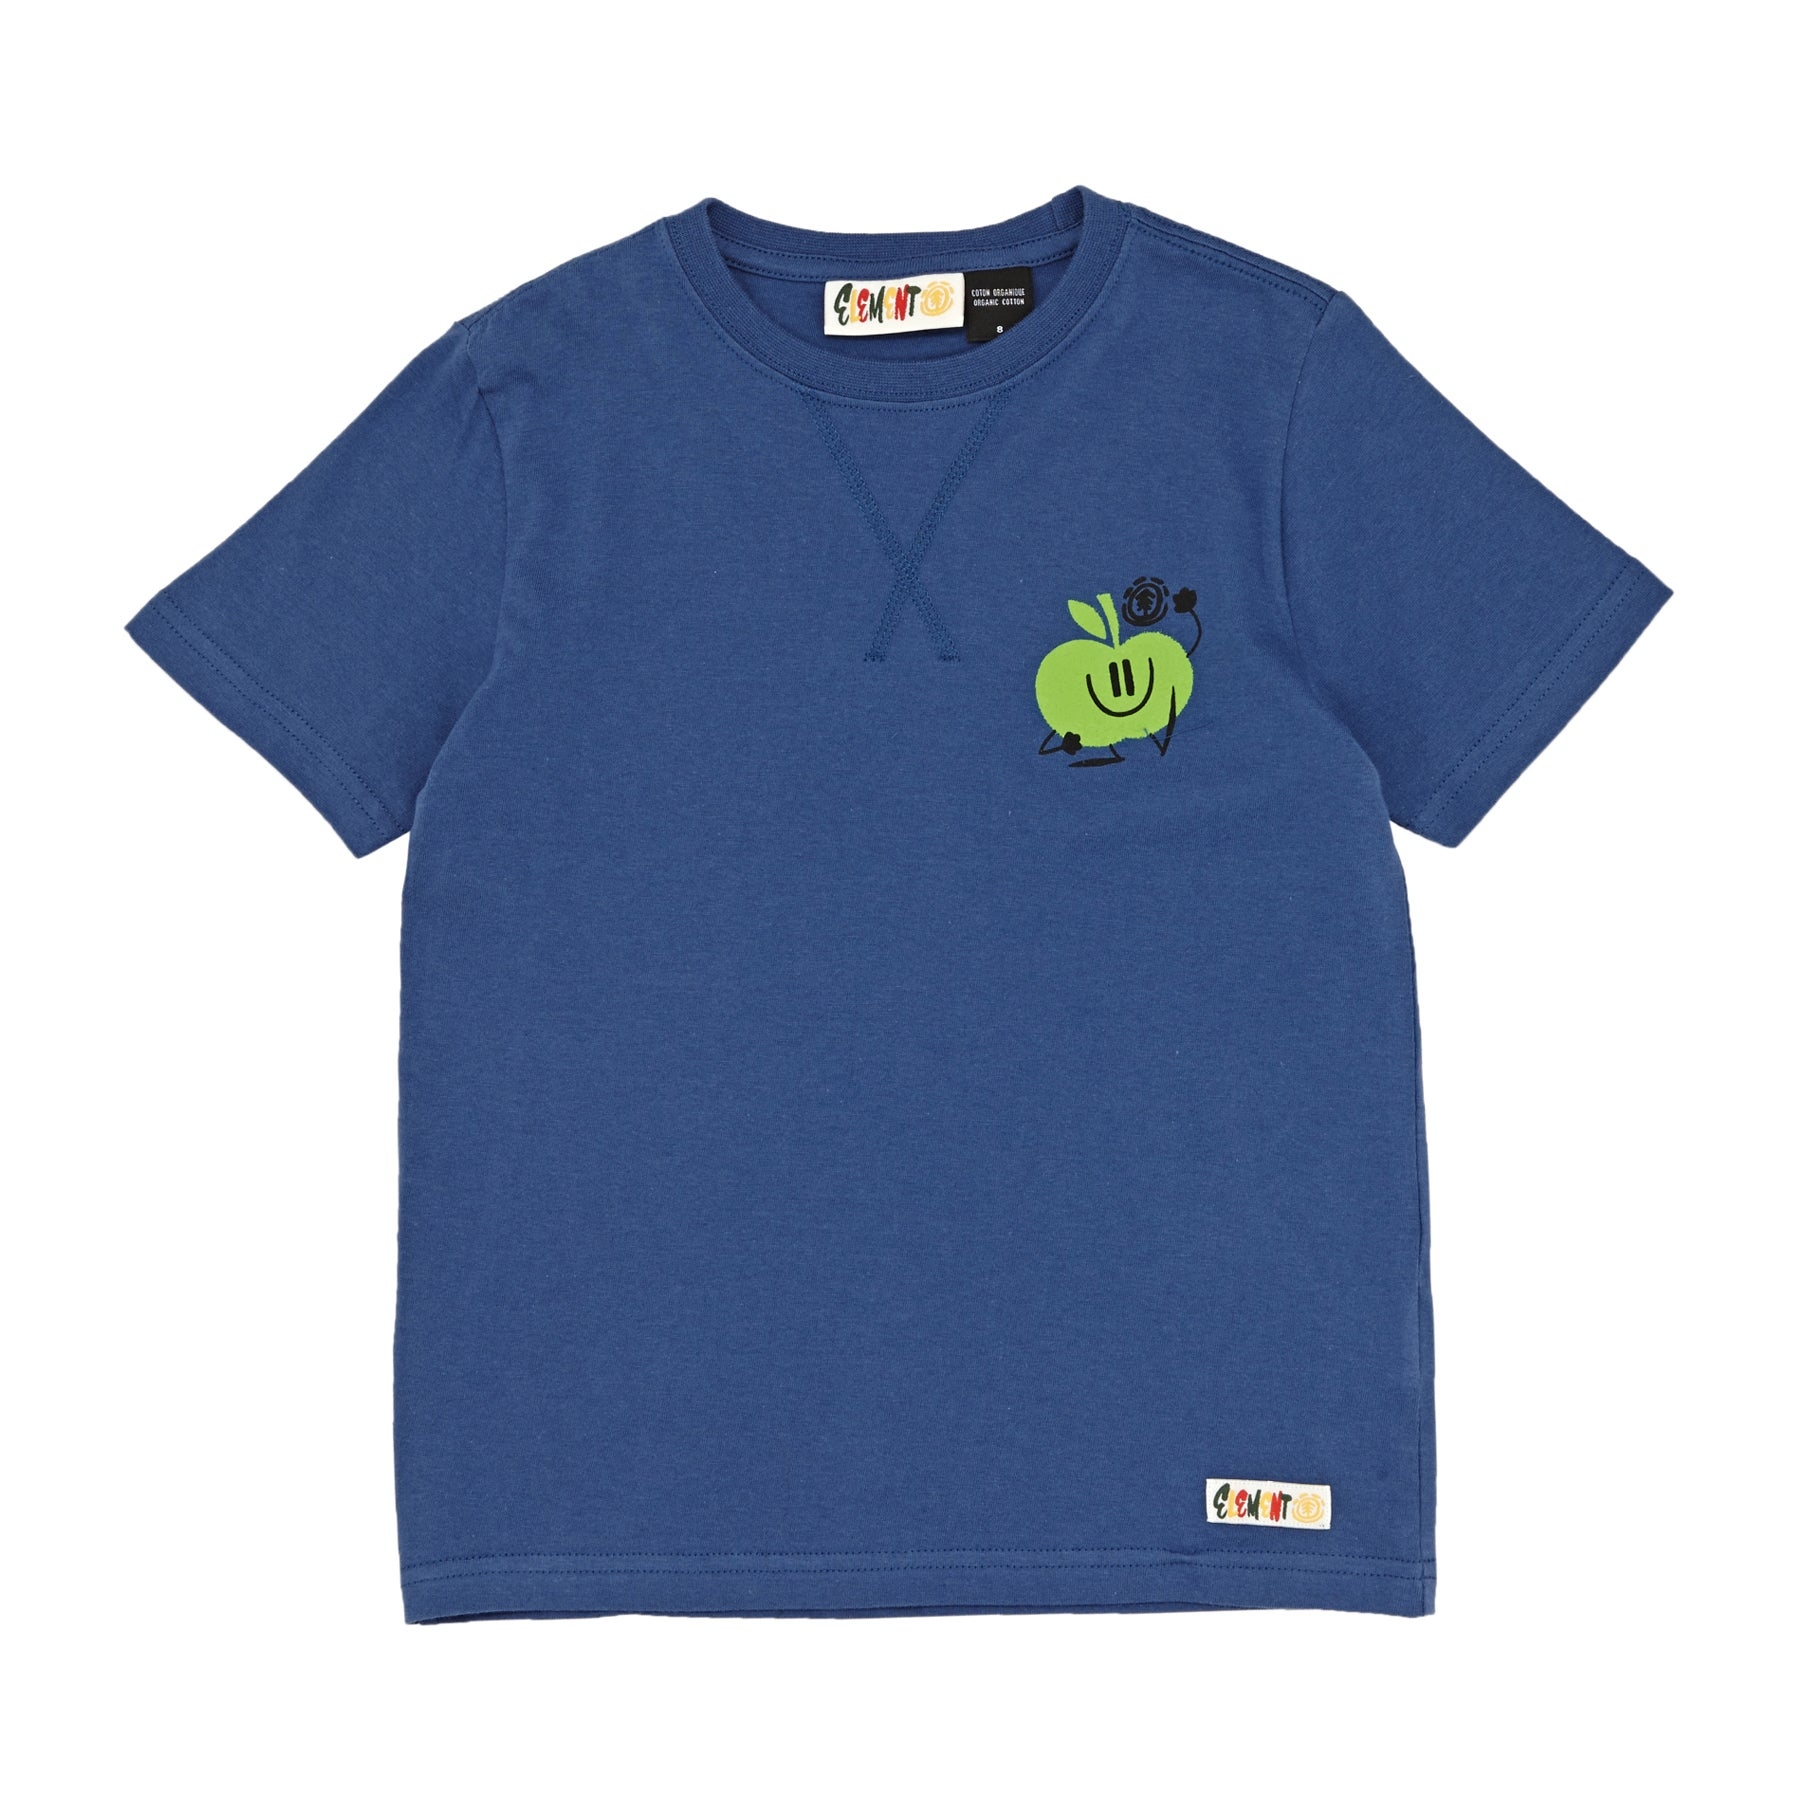 Element Yawyd Healthy Kids Short Sleeve T-Shirt - Blueberry